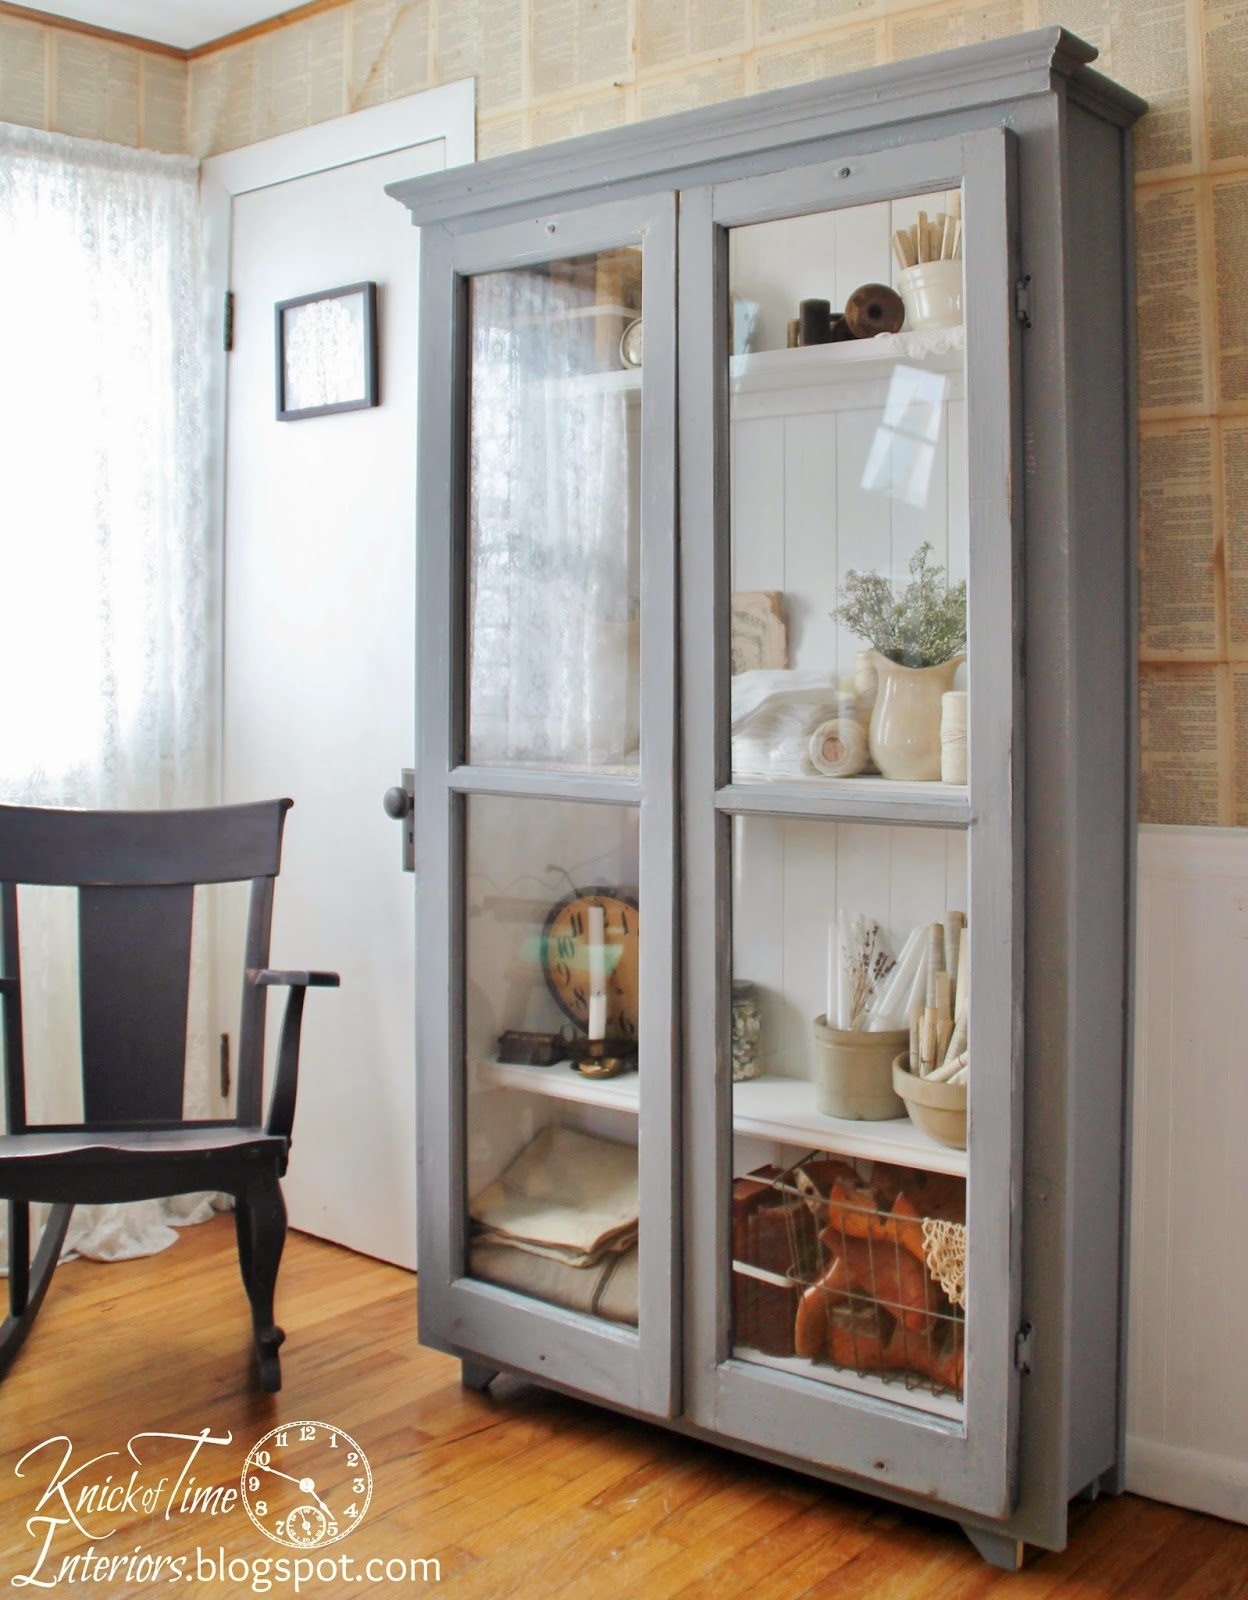 The Making of an Antique Cupboard Knick of Time